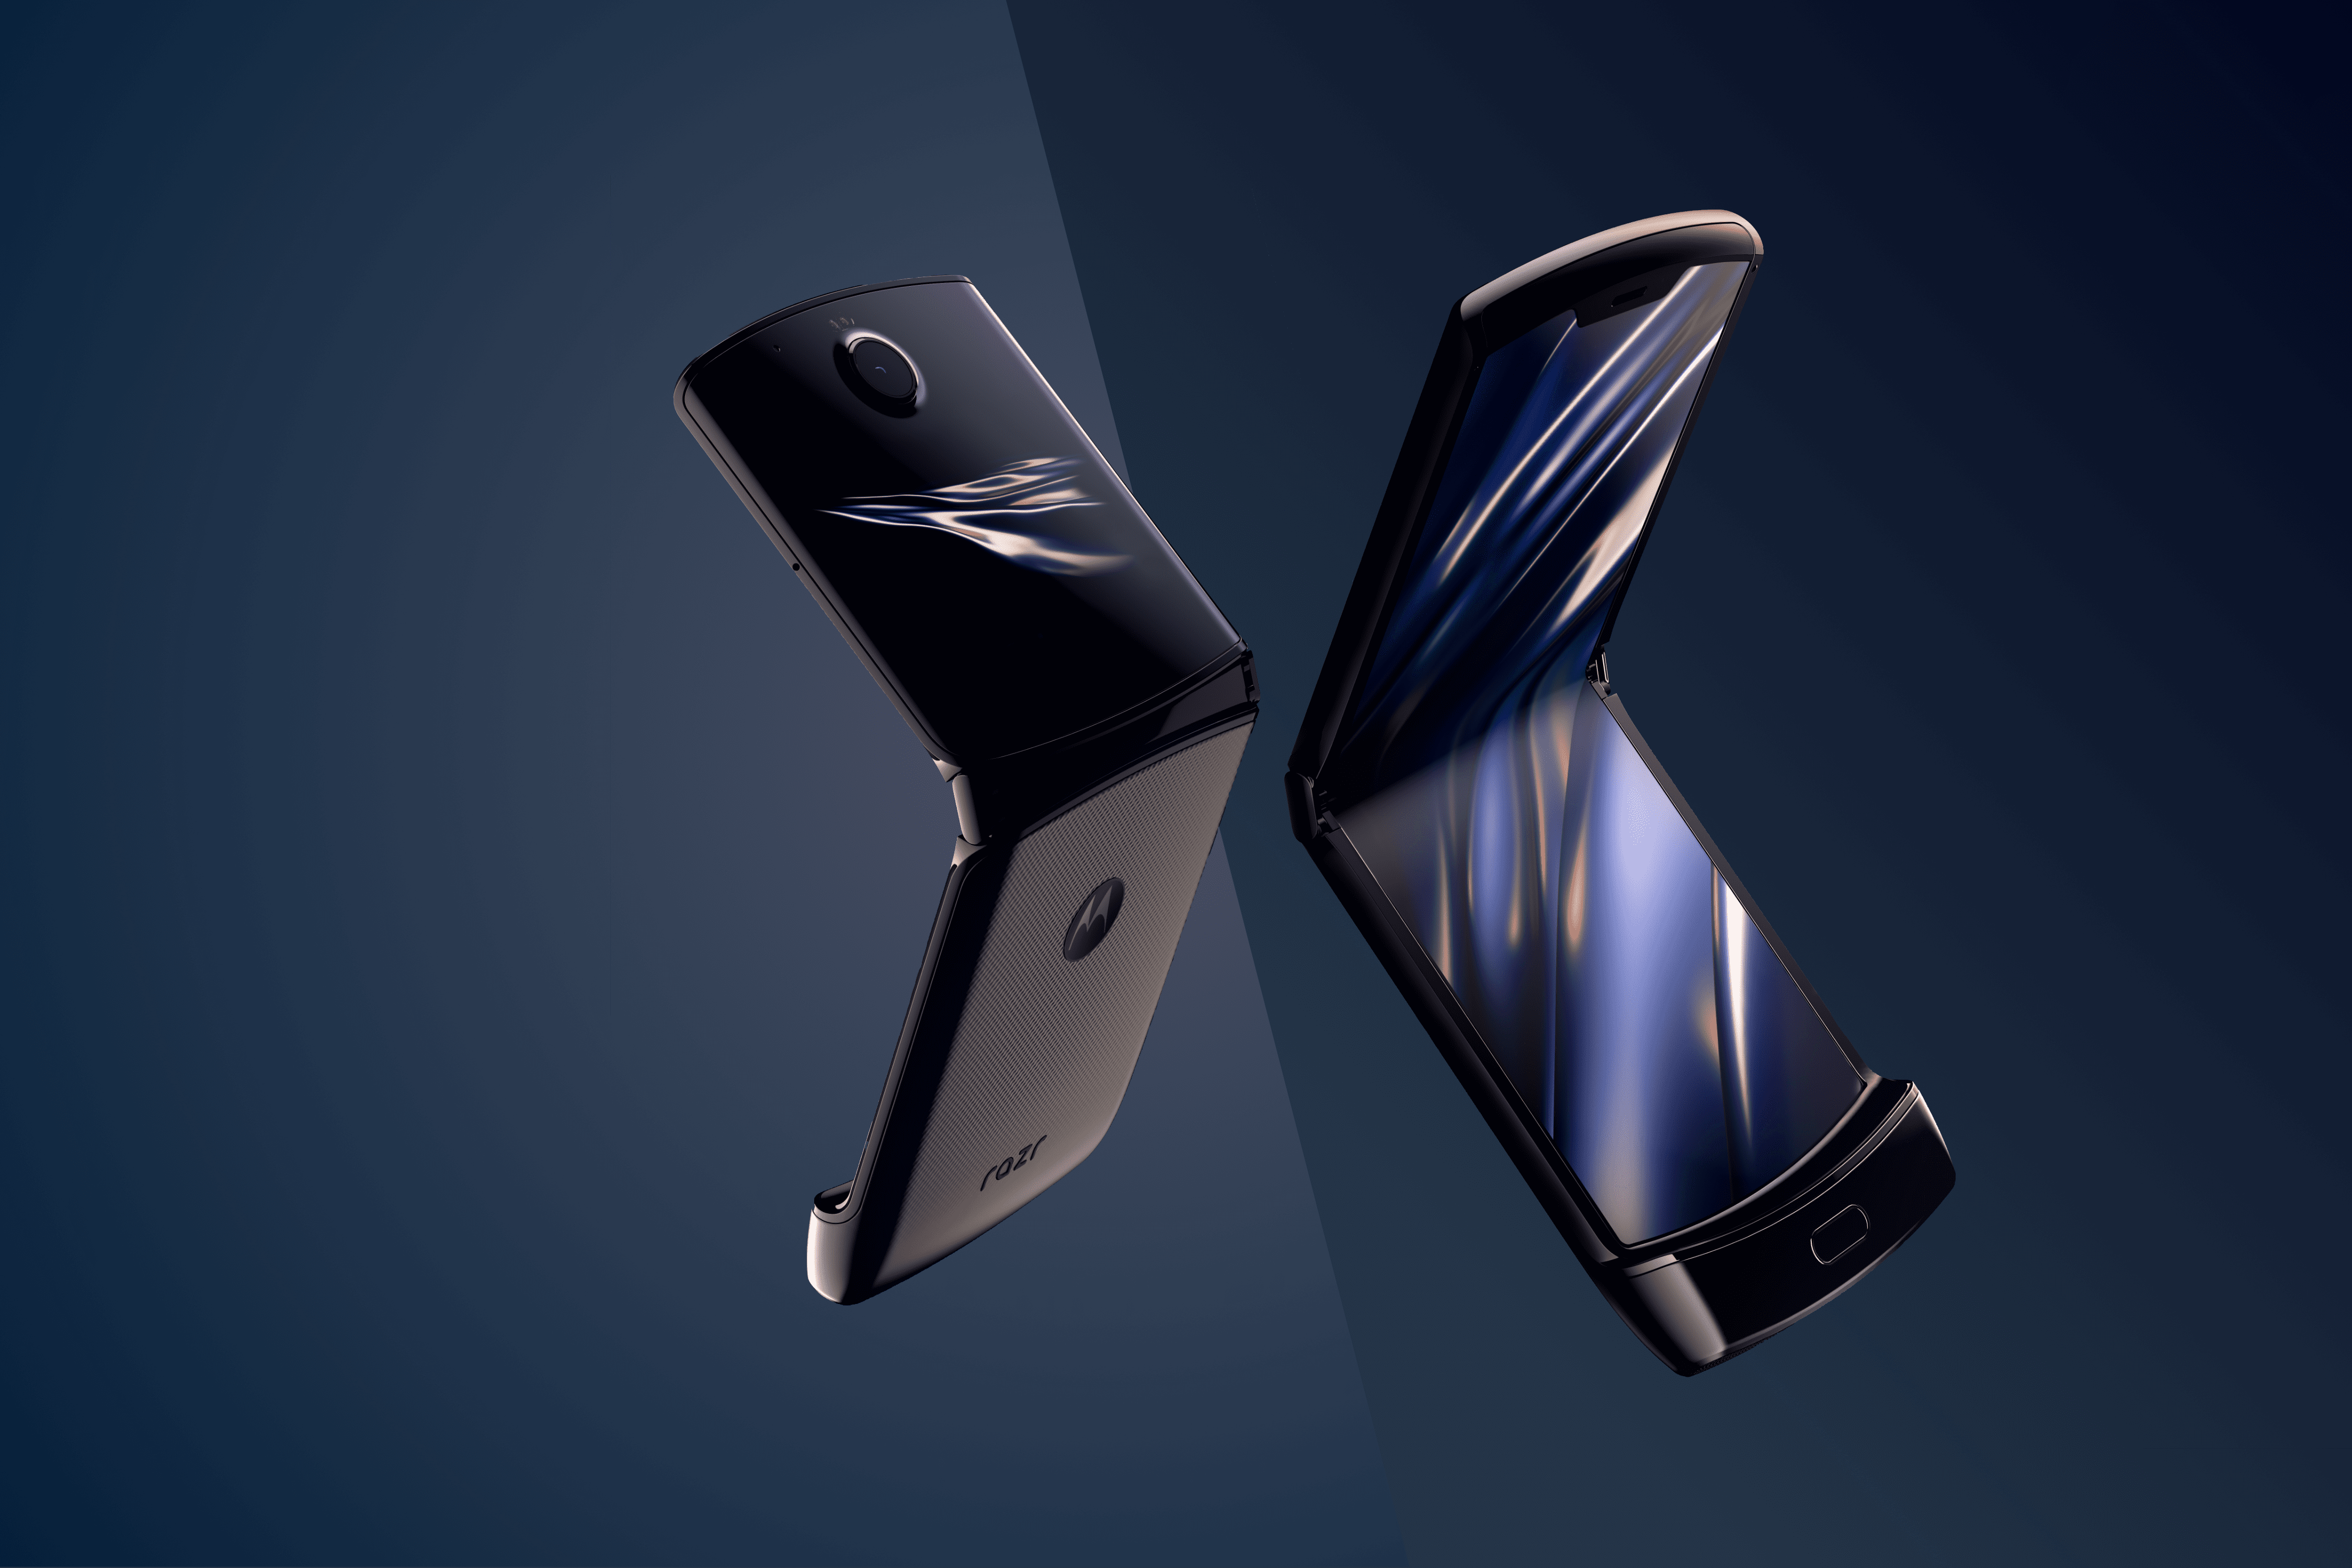 2 open Motorola Razr Phones, back and front on a blue background